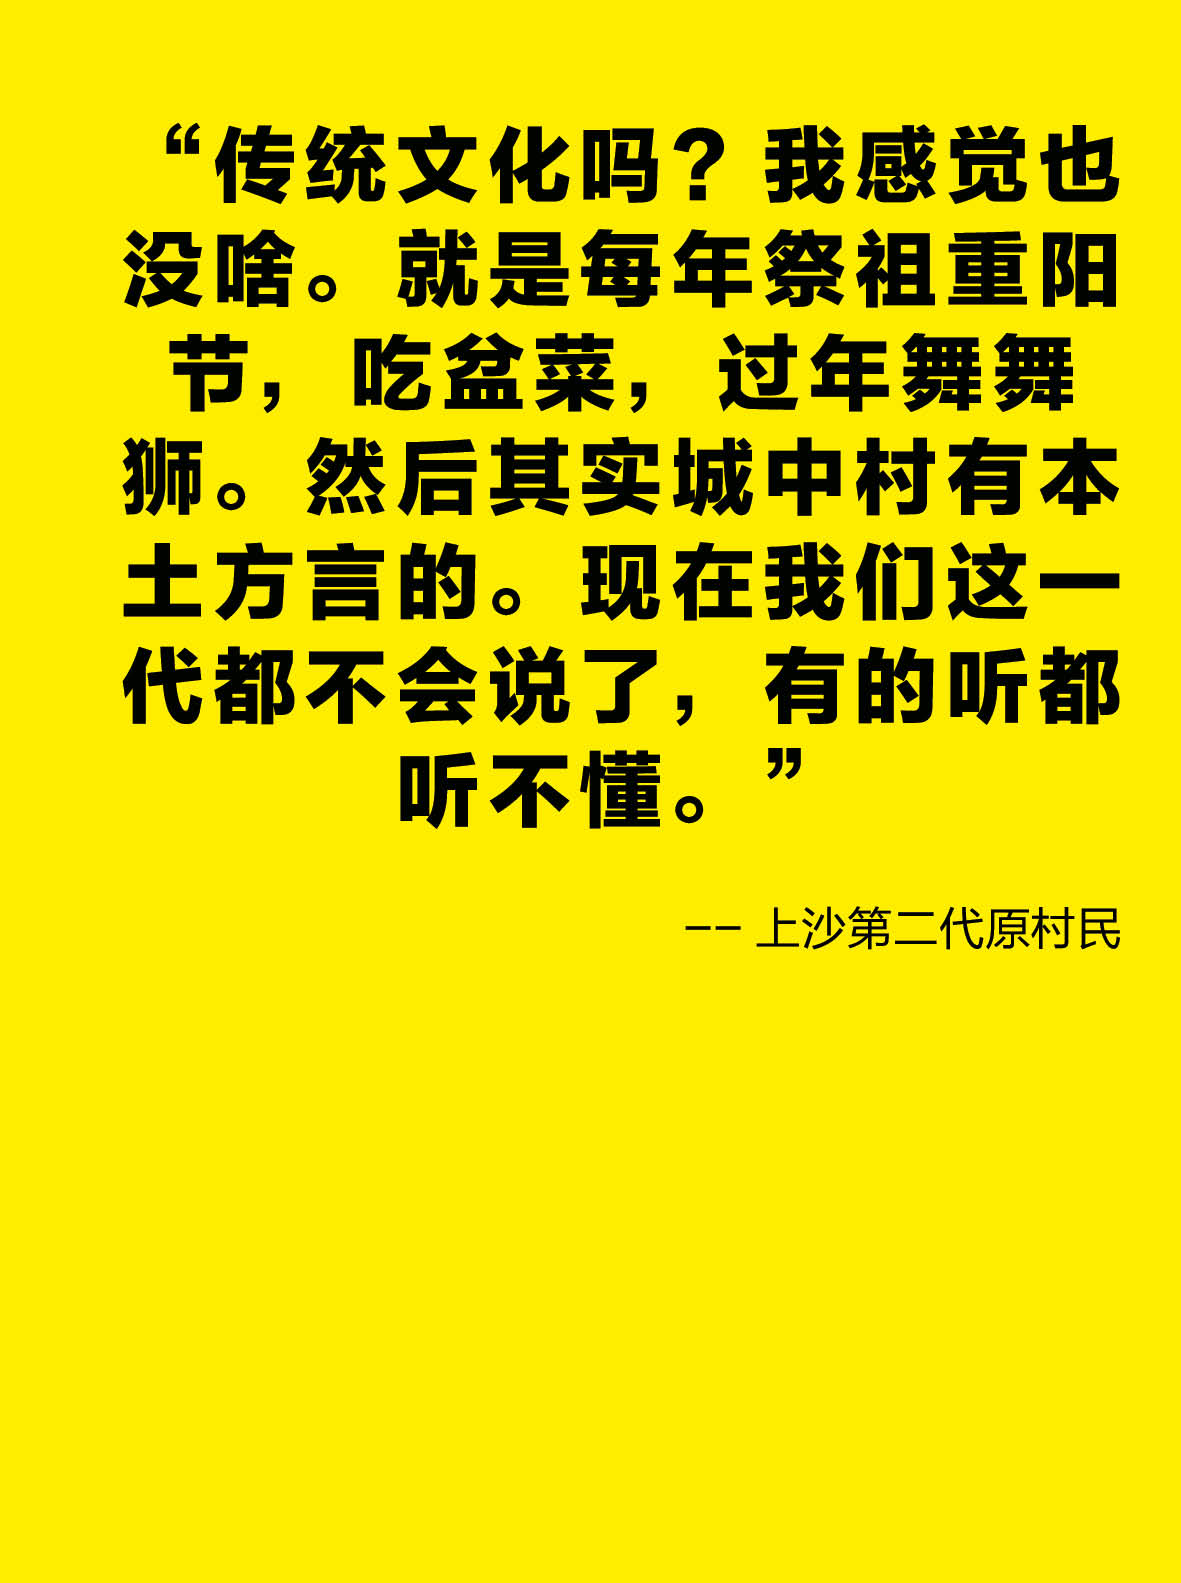 20180106_Shangsha Quotes test0310.jpg